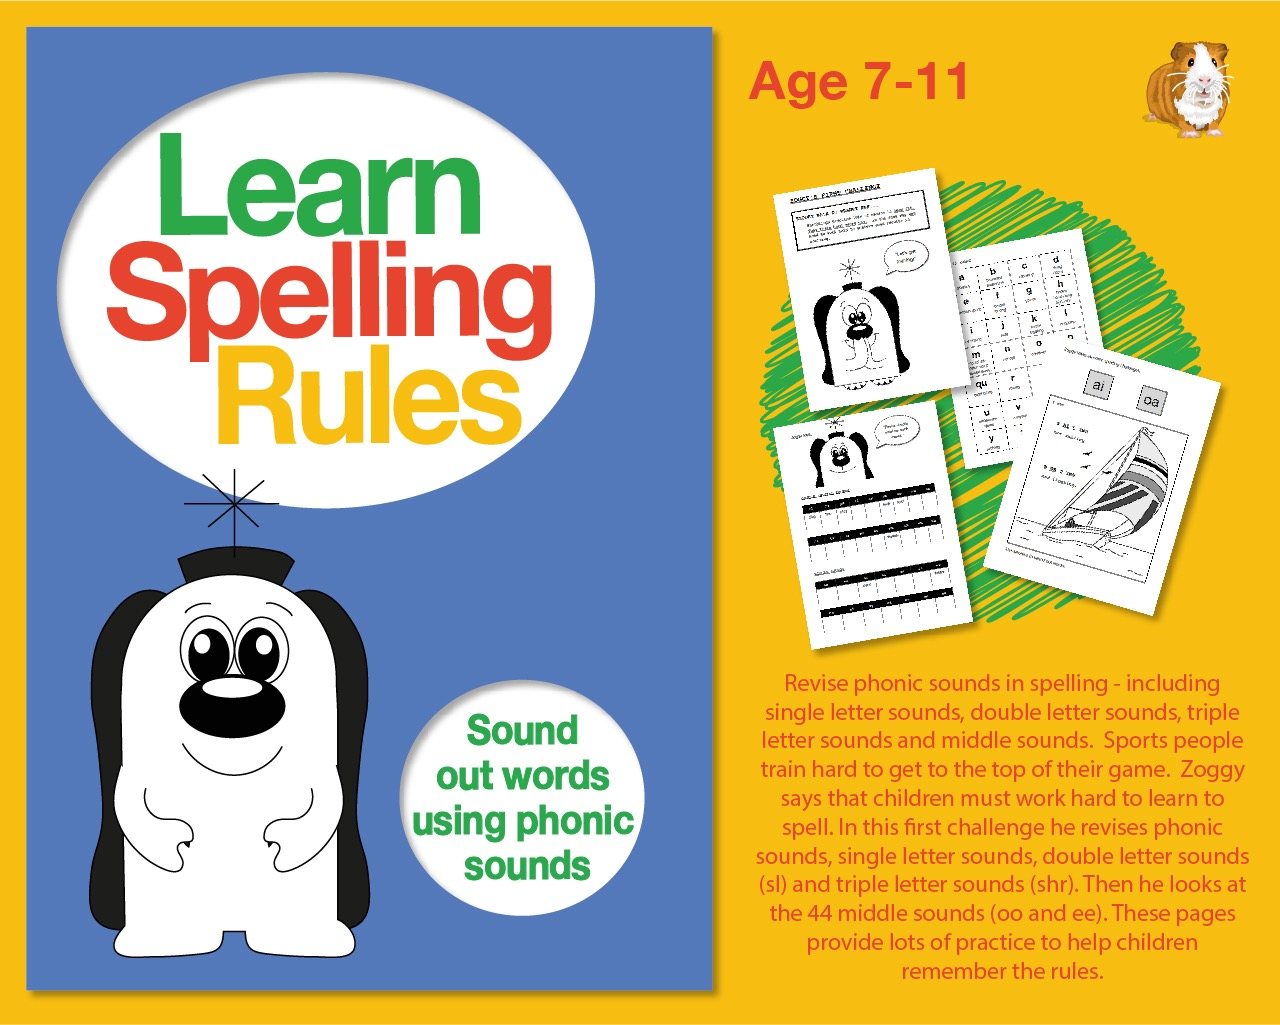 Learn Spelling Rules Challenge 1: Sound Out Words Using Phonic Sounds (7-11 years)